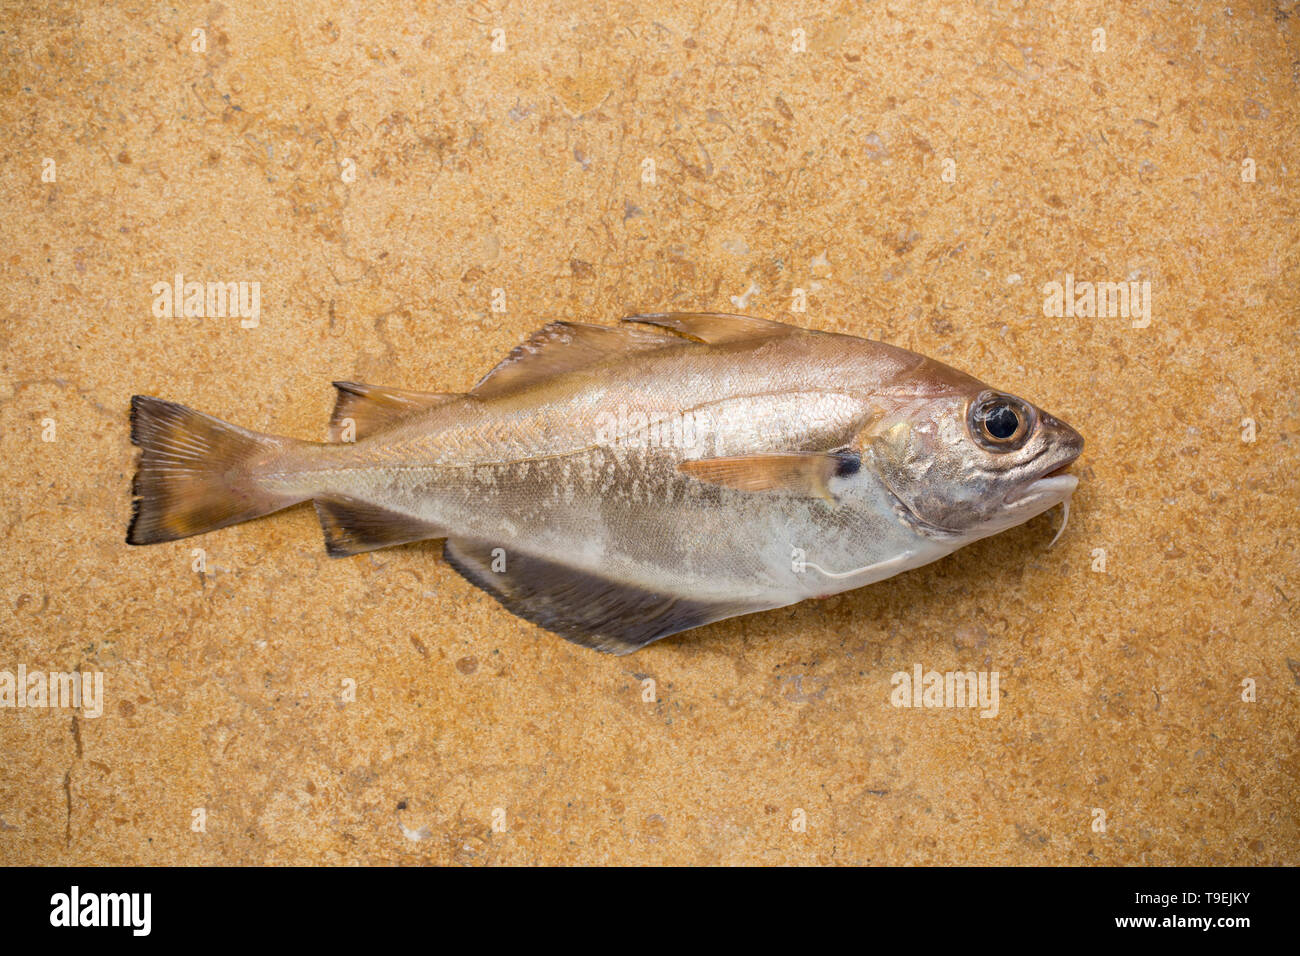 A raw, uncooked pouting, Trisopterus luscus,that was caught on rod and line fishing from a boat in the English Channel. Pouting are not generally eate - Stock Image